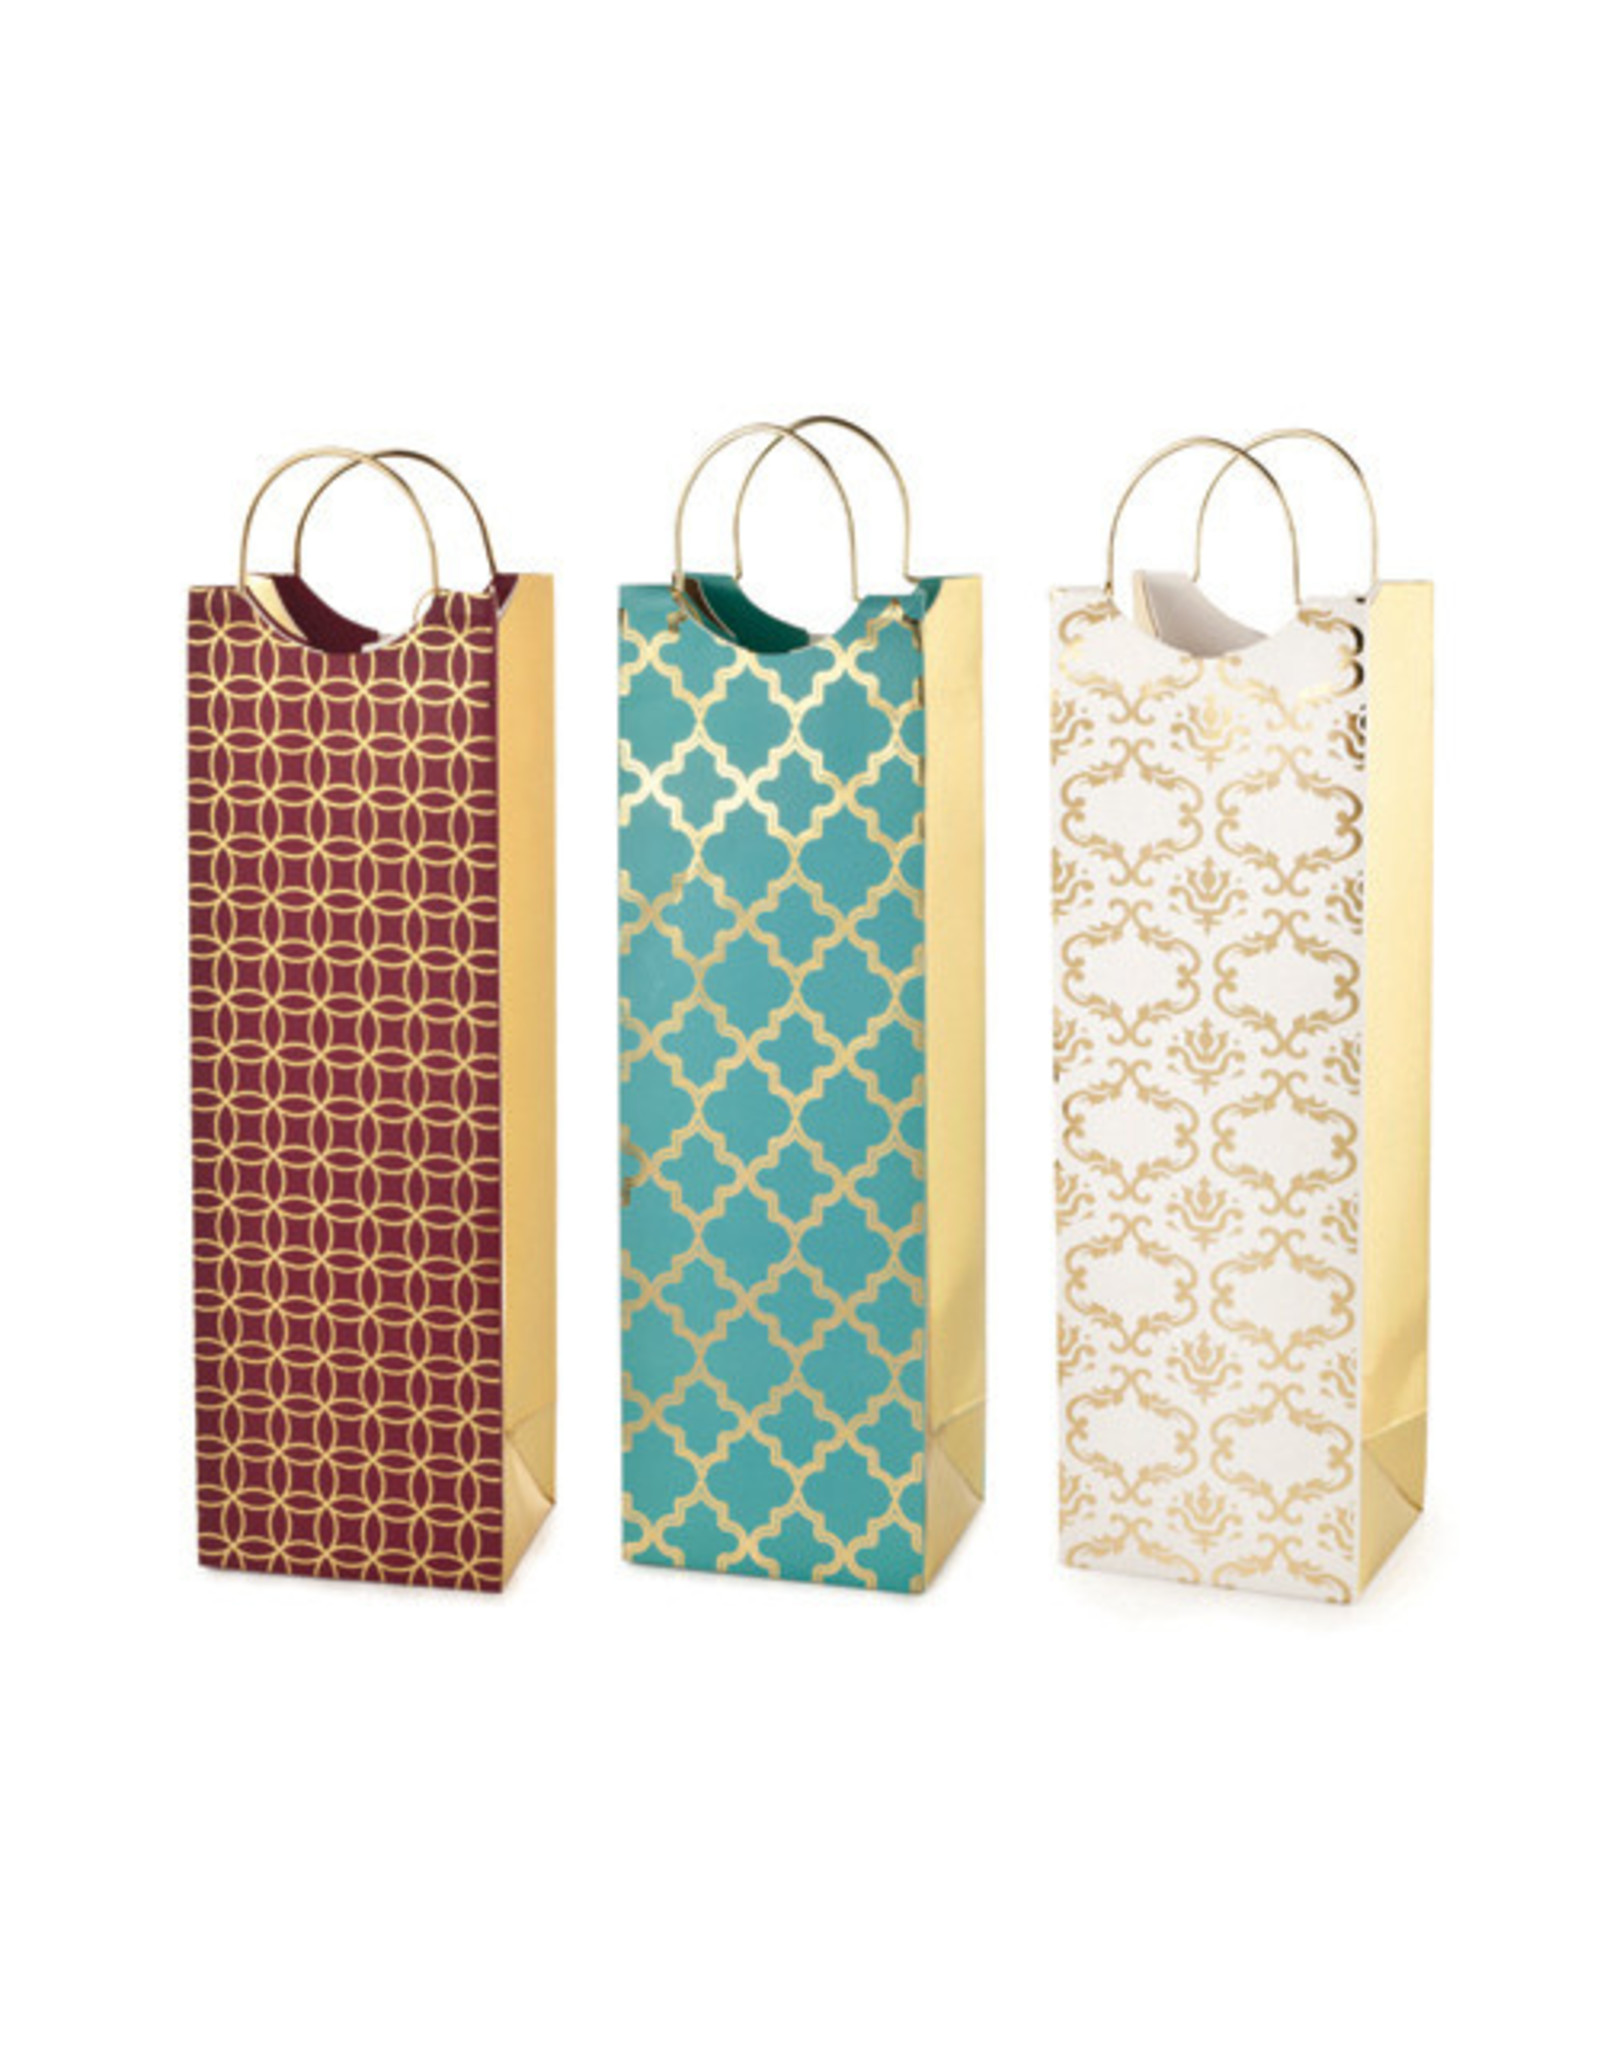 TRUE TOTE ASSORTED LUXE PATTERN BAG